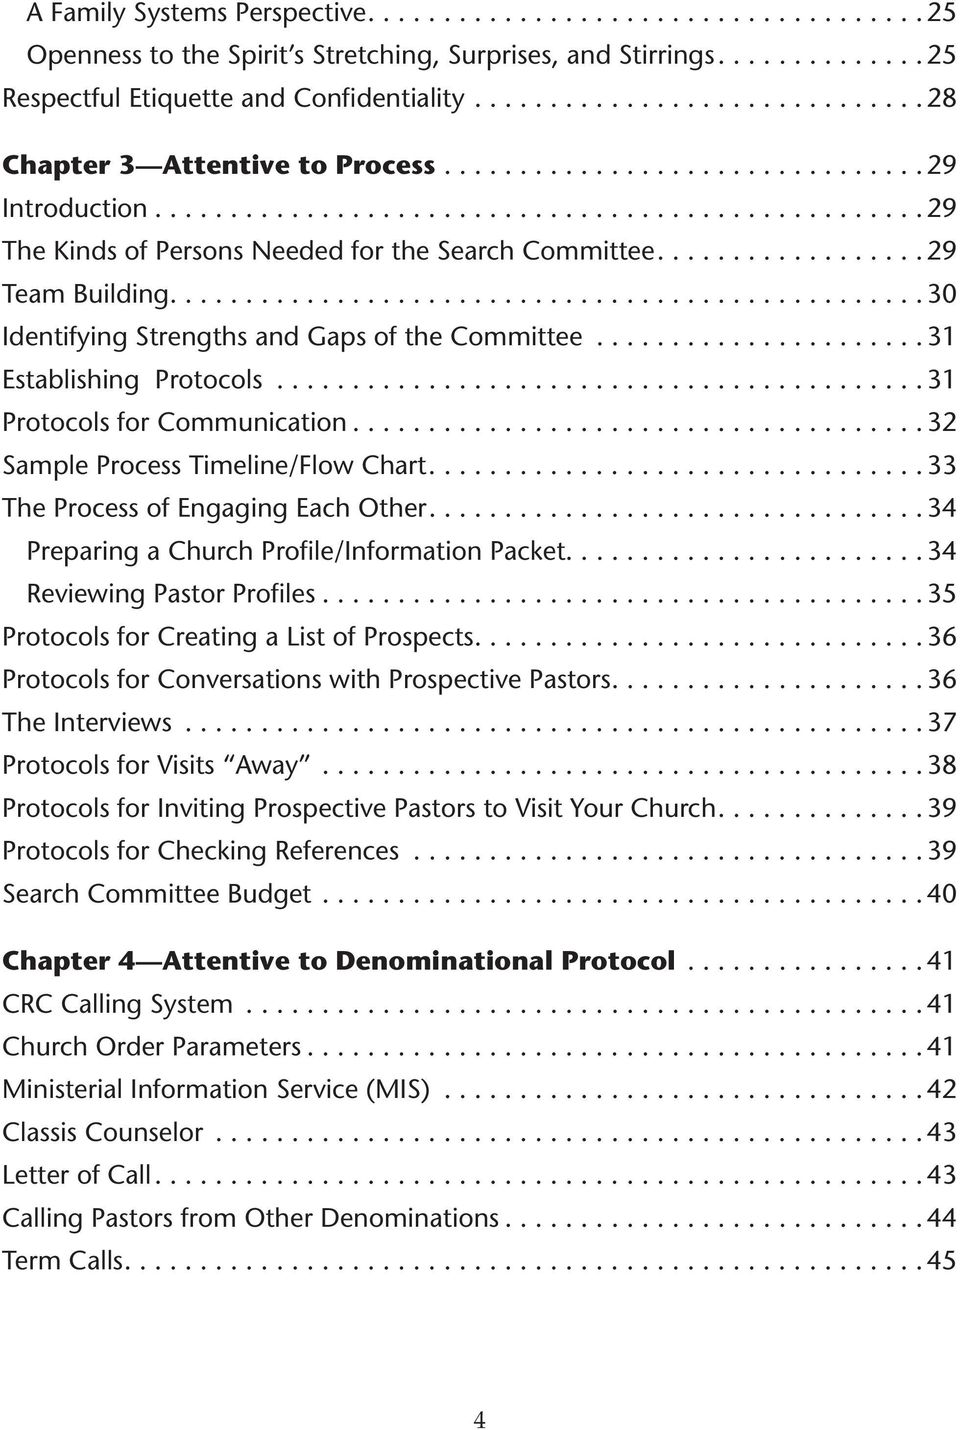 .. 31 Protocols for Communication.... 32 Sample Process Timeline/Flow Chart.... 33 The Process of Engaging Each Other.... 34 Preparing a Church Profile/Information Packet.